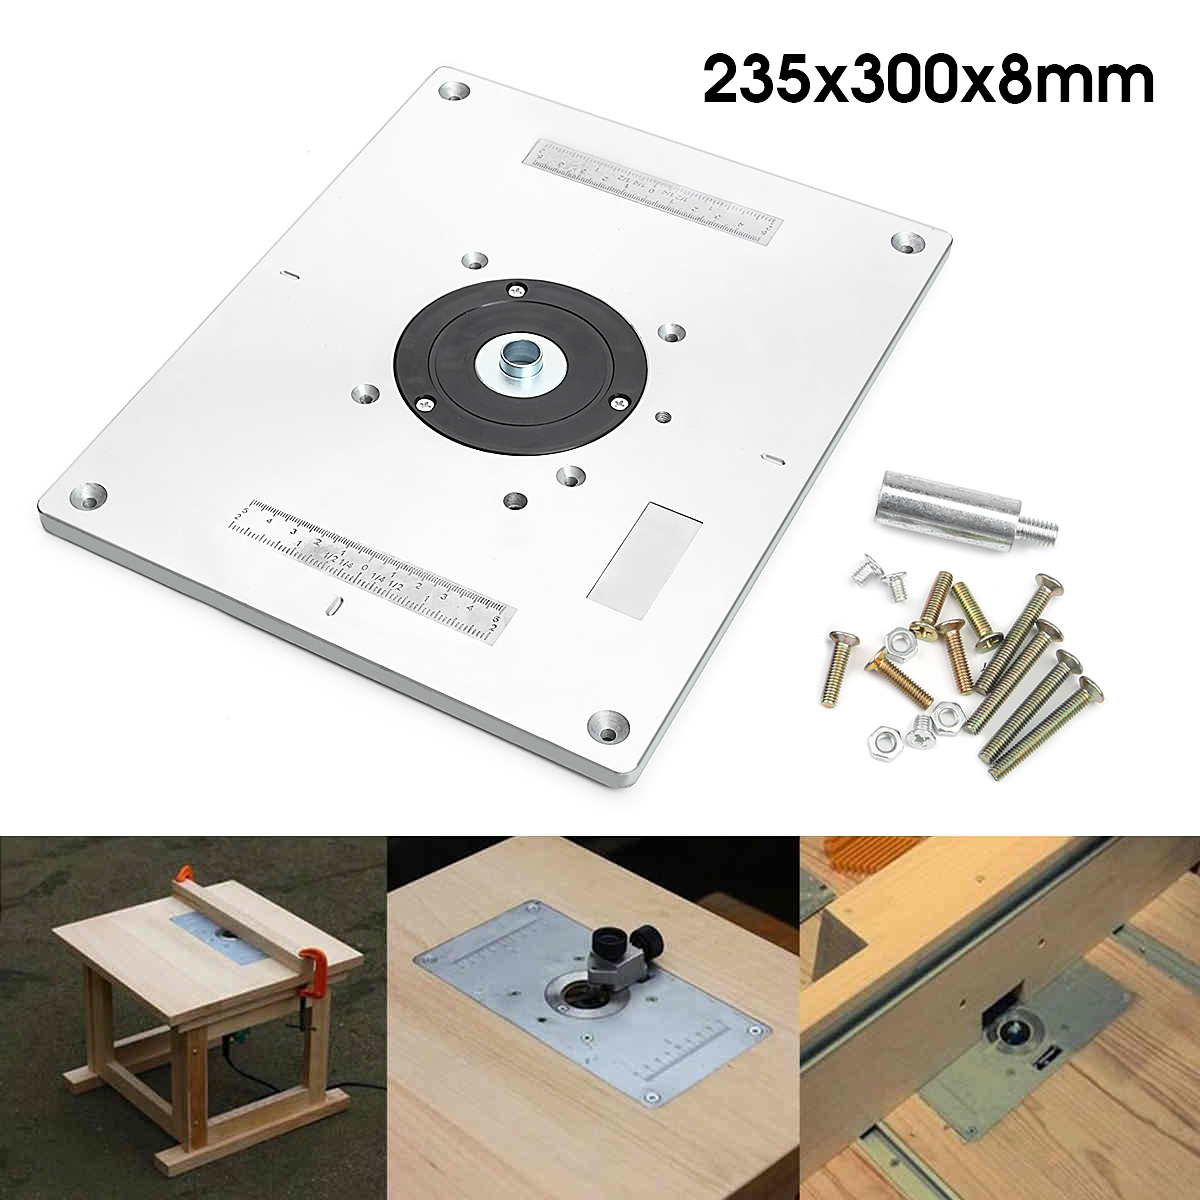 New high quality wood trimmer router door lock mortice hinge best price aluminum router table insert plate for popular router trimmers models engrving machine diy woodworking keyboard keysfo Choice Image